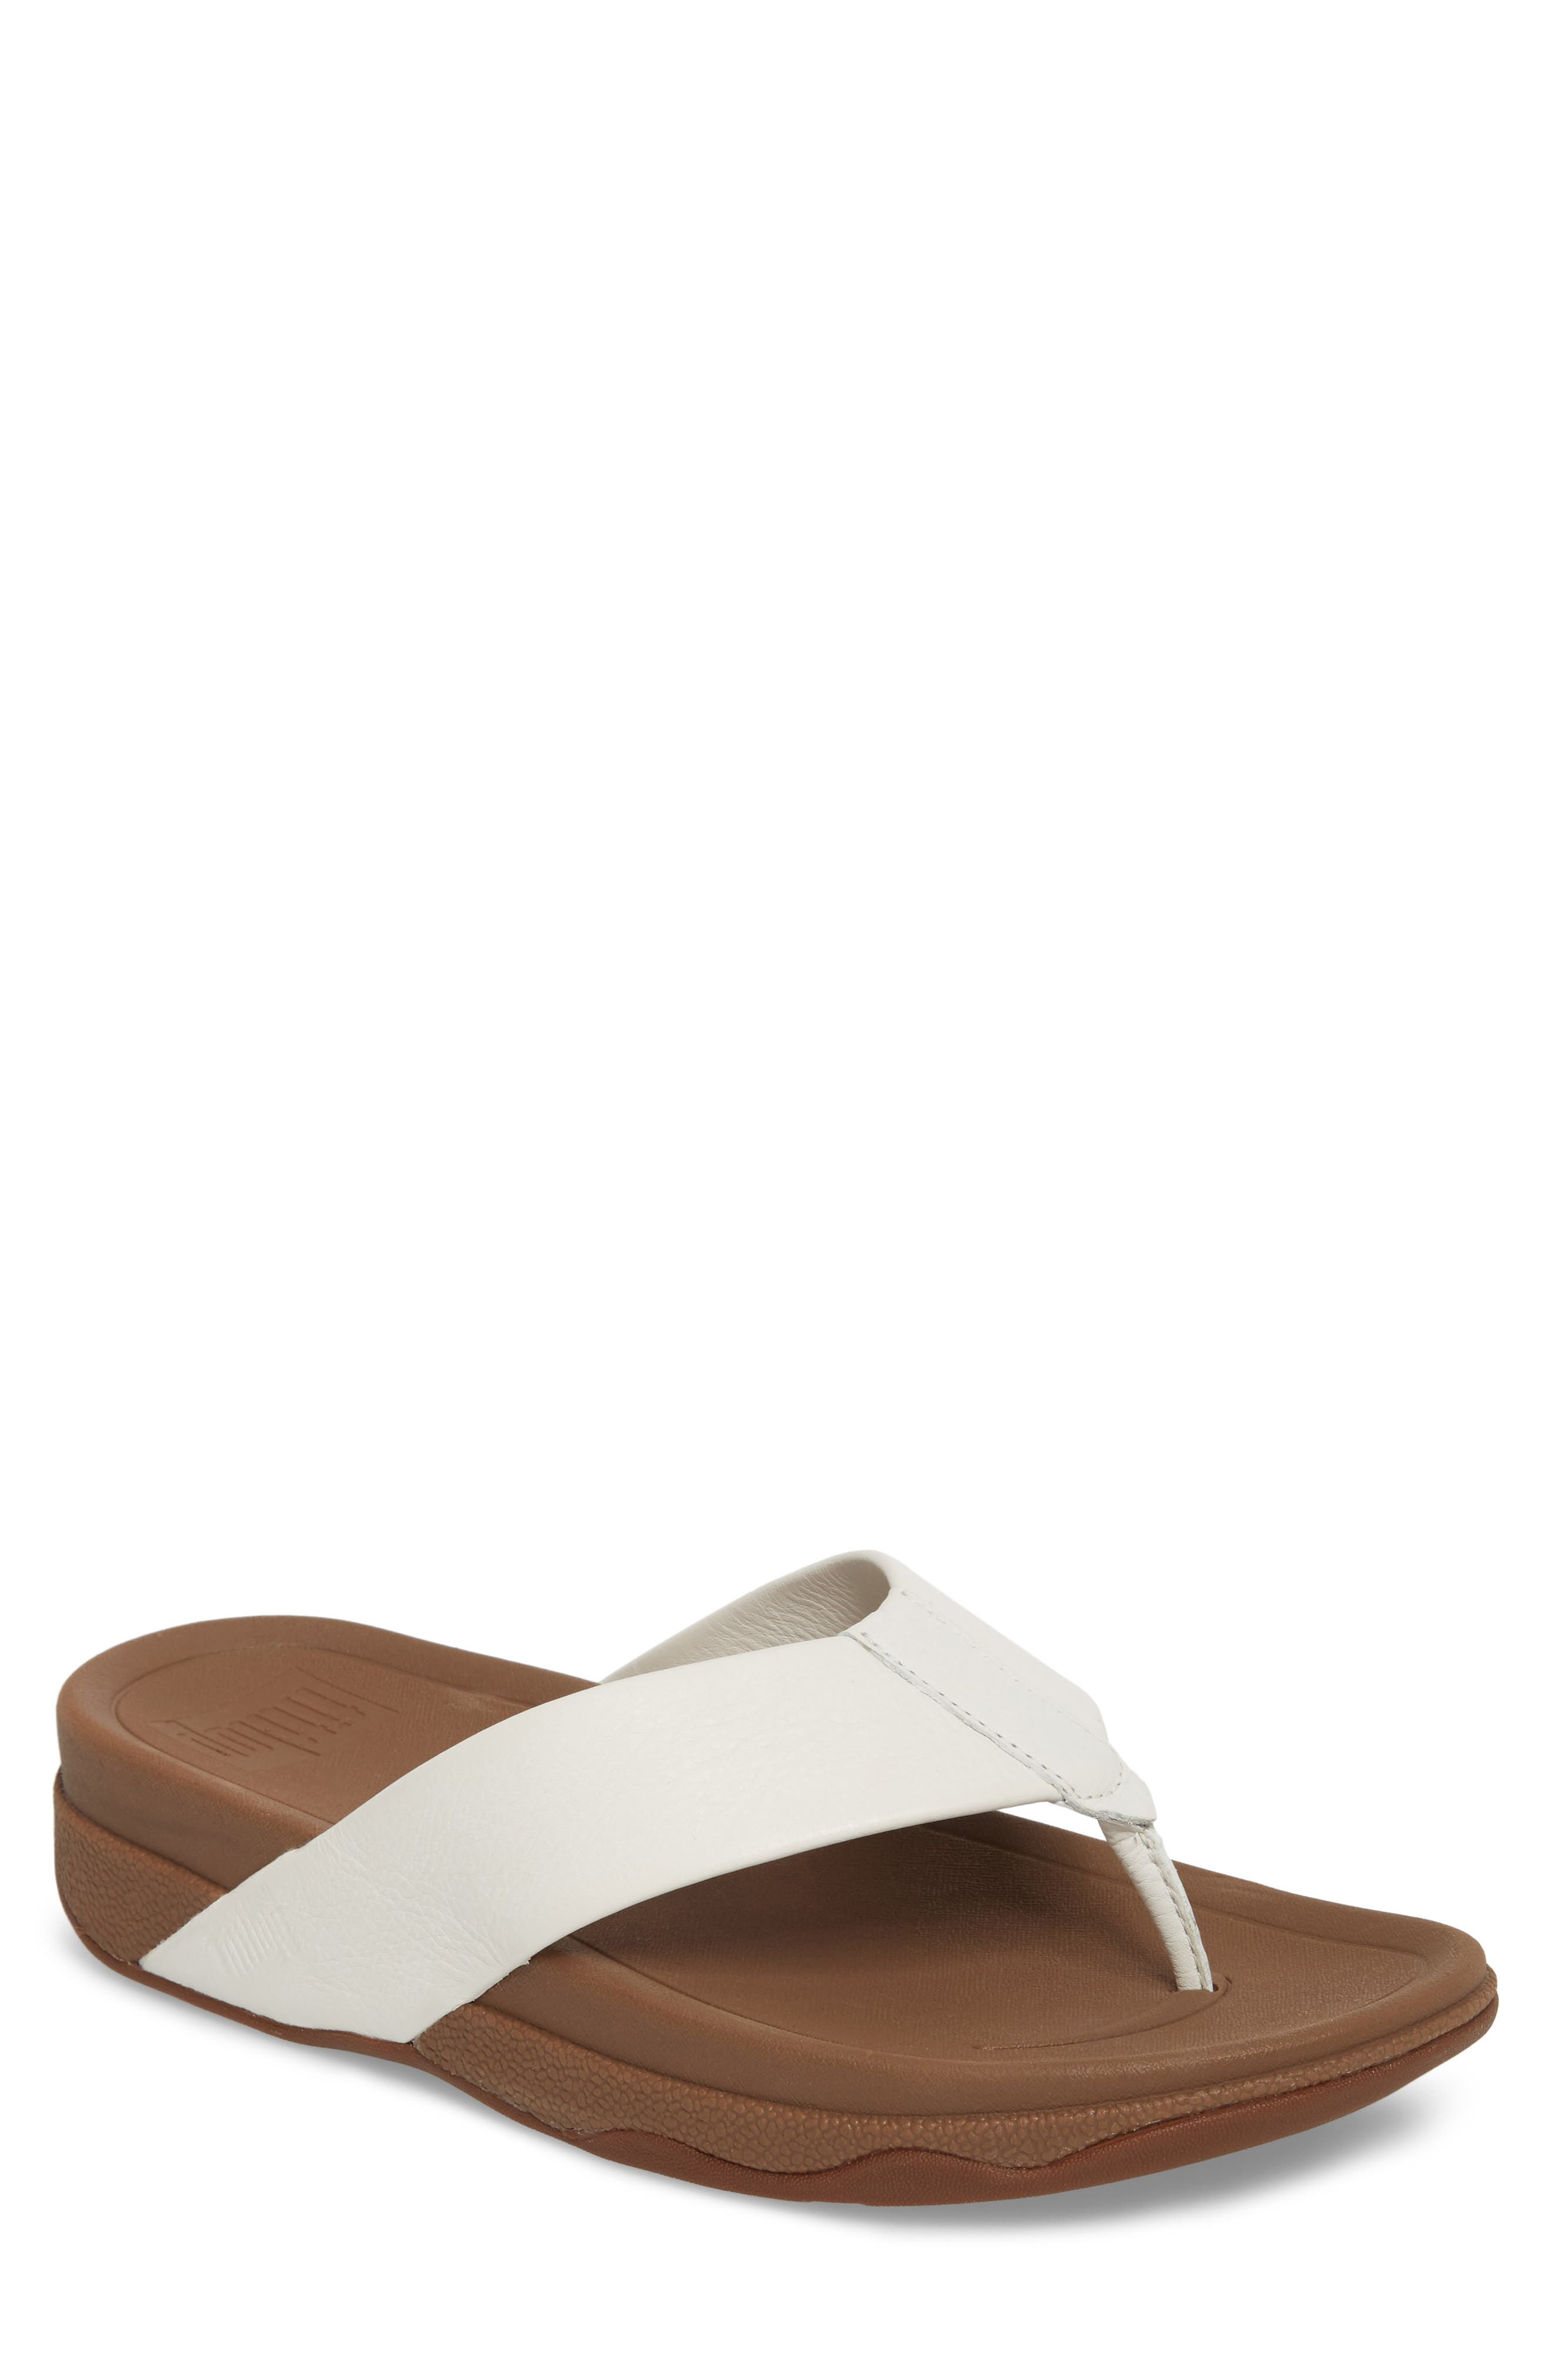 7b58656e786ac Fitflop Surfer Flip Flop In Urban White